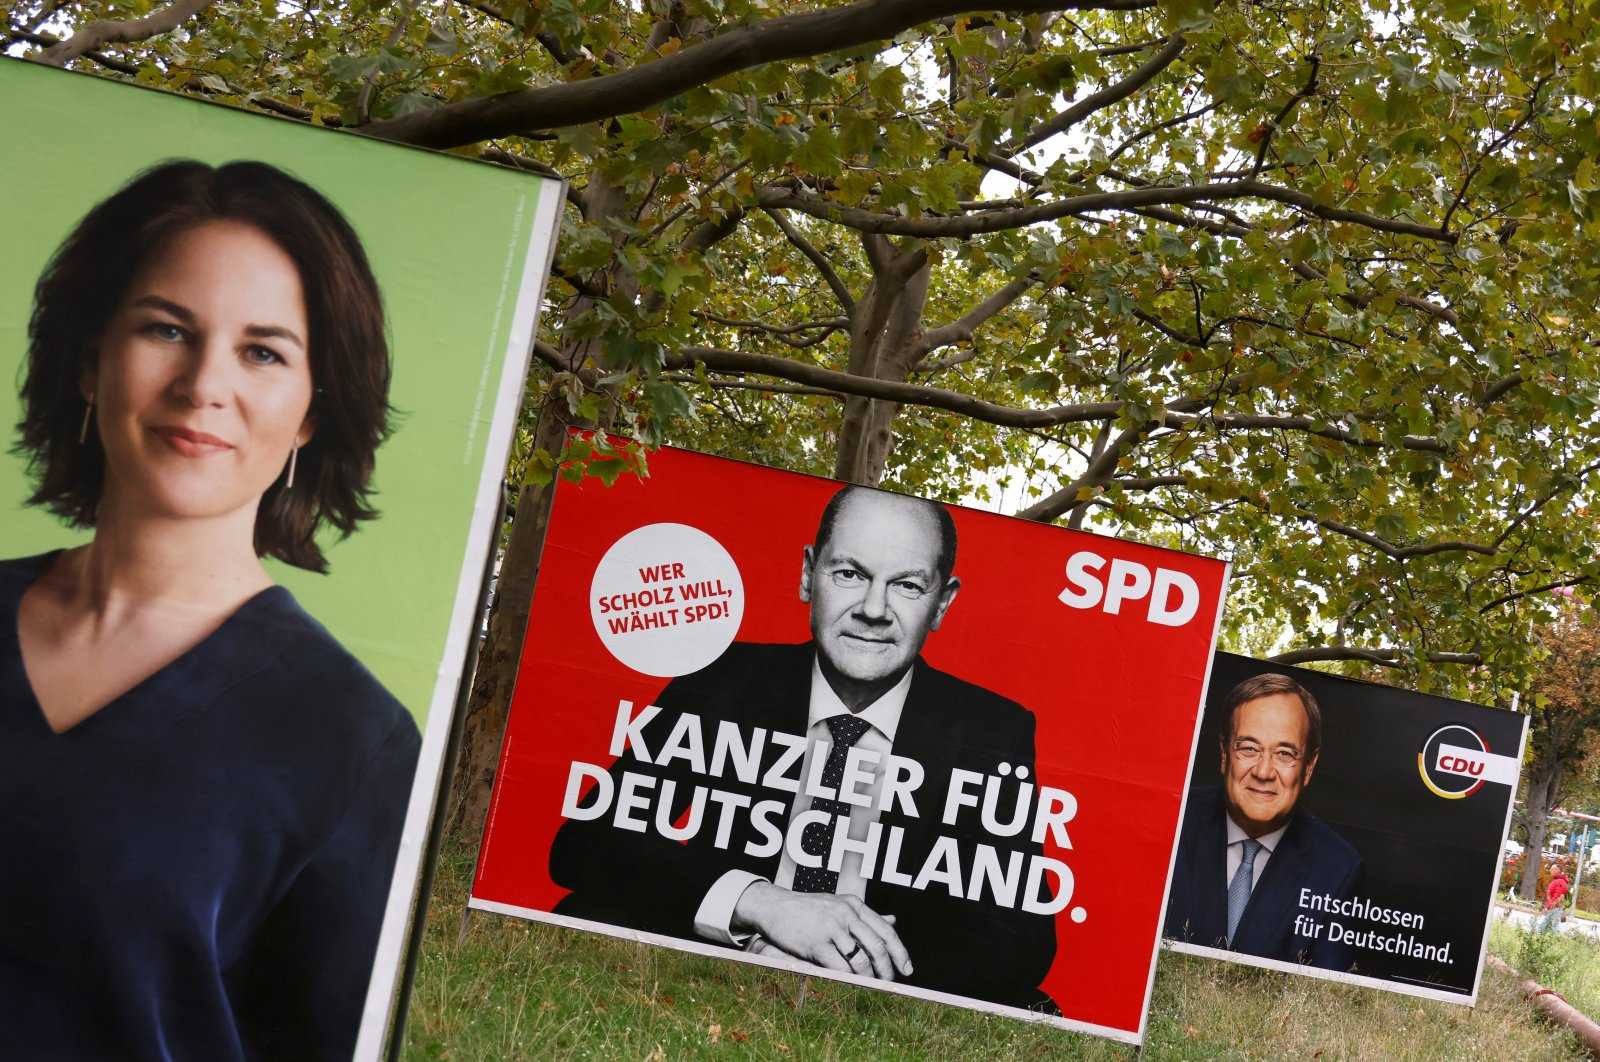 Election posters of Germany's top candidates for chancellor, Annalena Baerbock, co-leader of Germany's Green party, Olaf Scholz, German minister of finance of the Social Democratic Party (SPD) and Armin Laschet, North Rhine-Westphalia's state premier and Christian Democratic Union (CDU) leader, are pictured, in Berlin, Germany, Sept. 16, 2021.  (Reuters Photo)